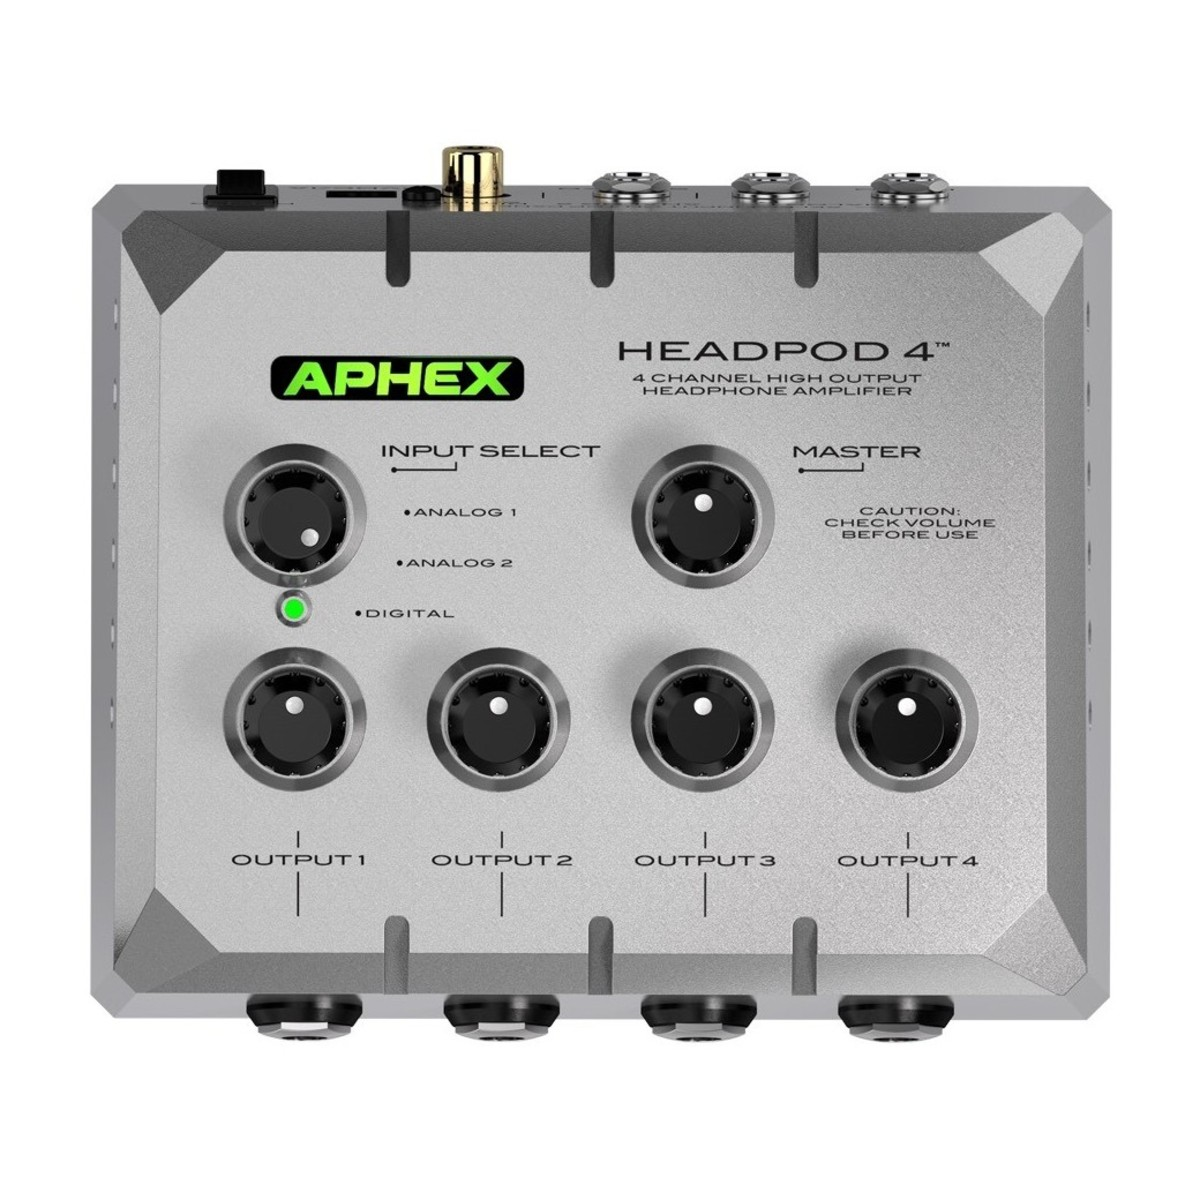 Aphex Headpod4 High Output Headphone Amplifier At Gear4music Audio Enhancement For Analog 1 Loading Zoom